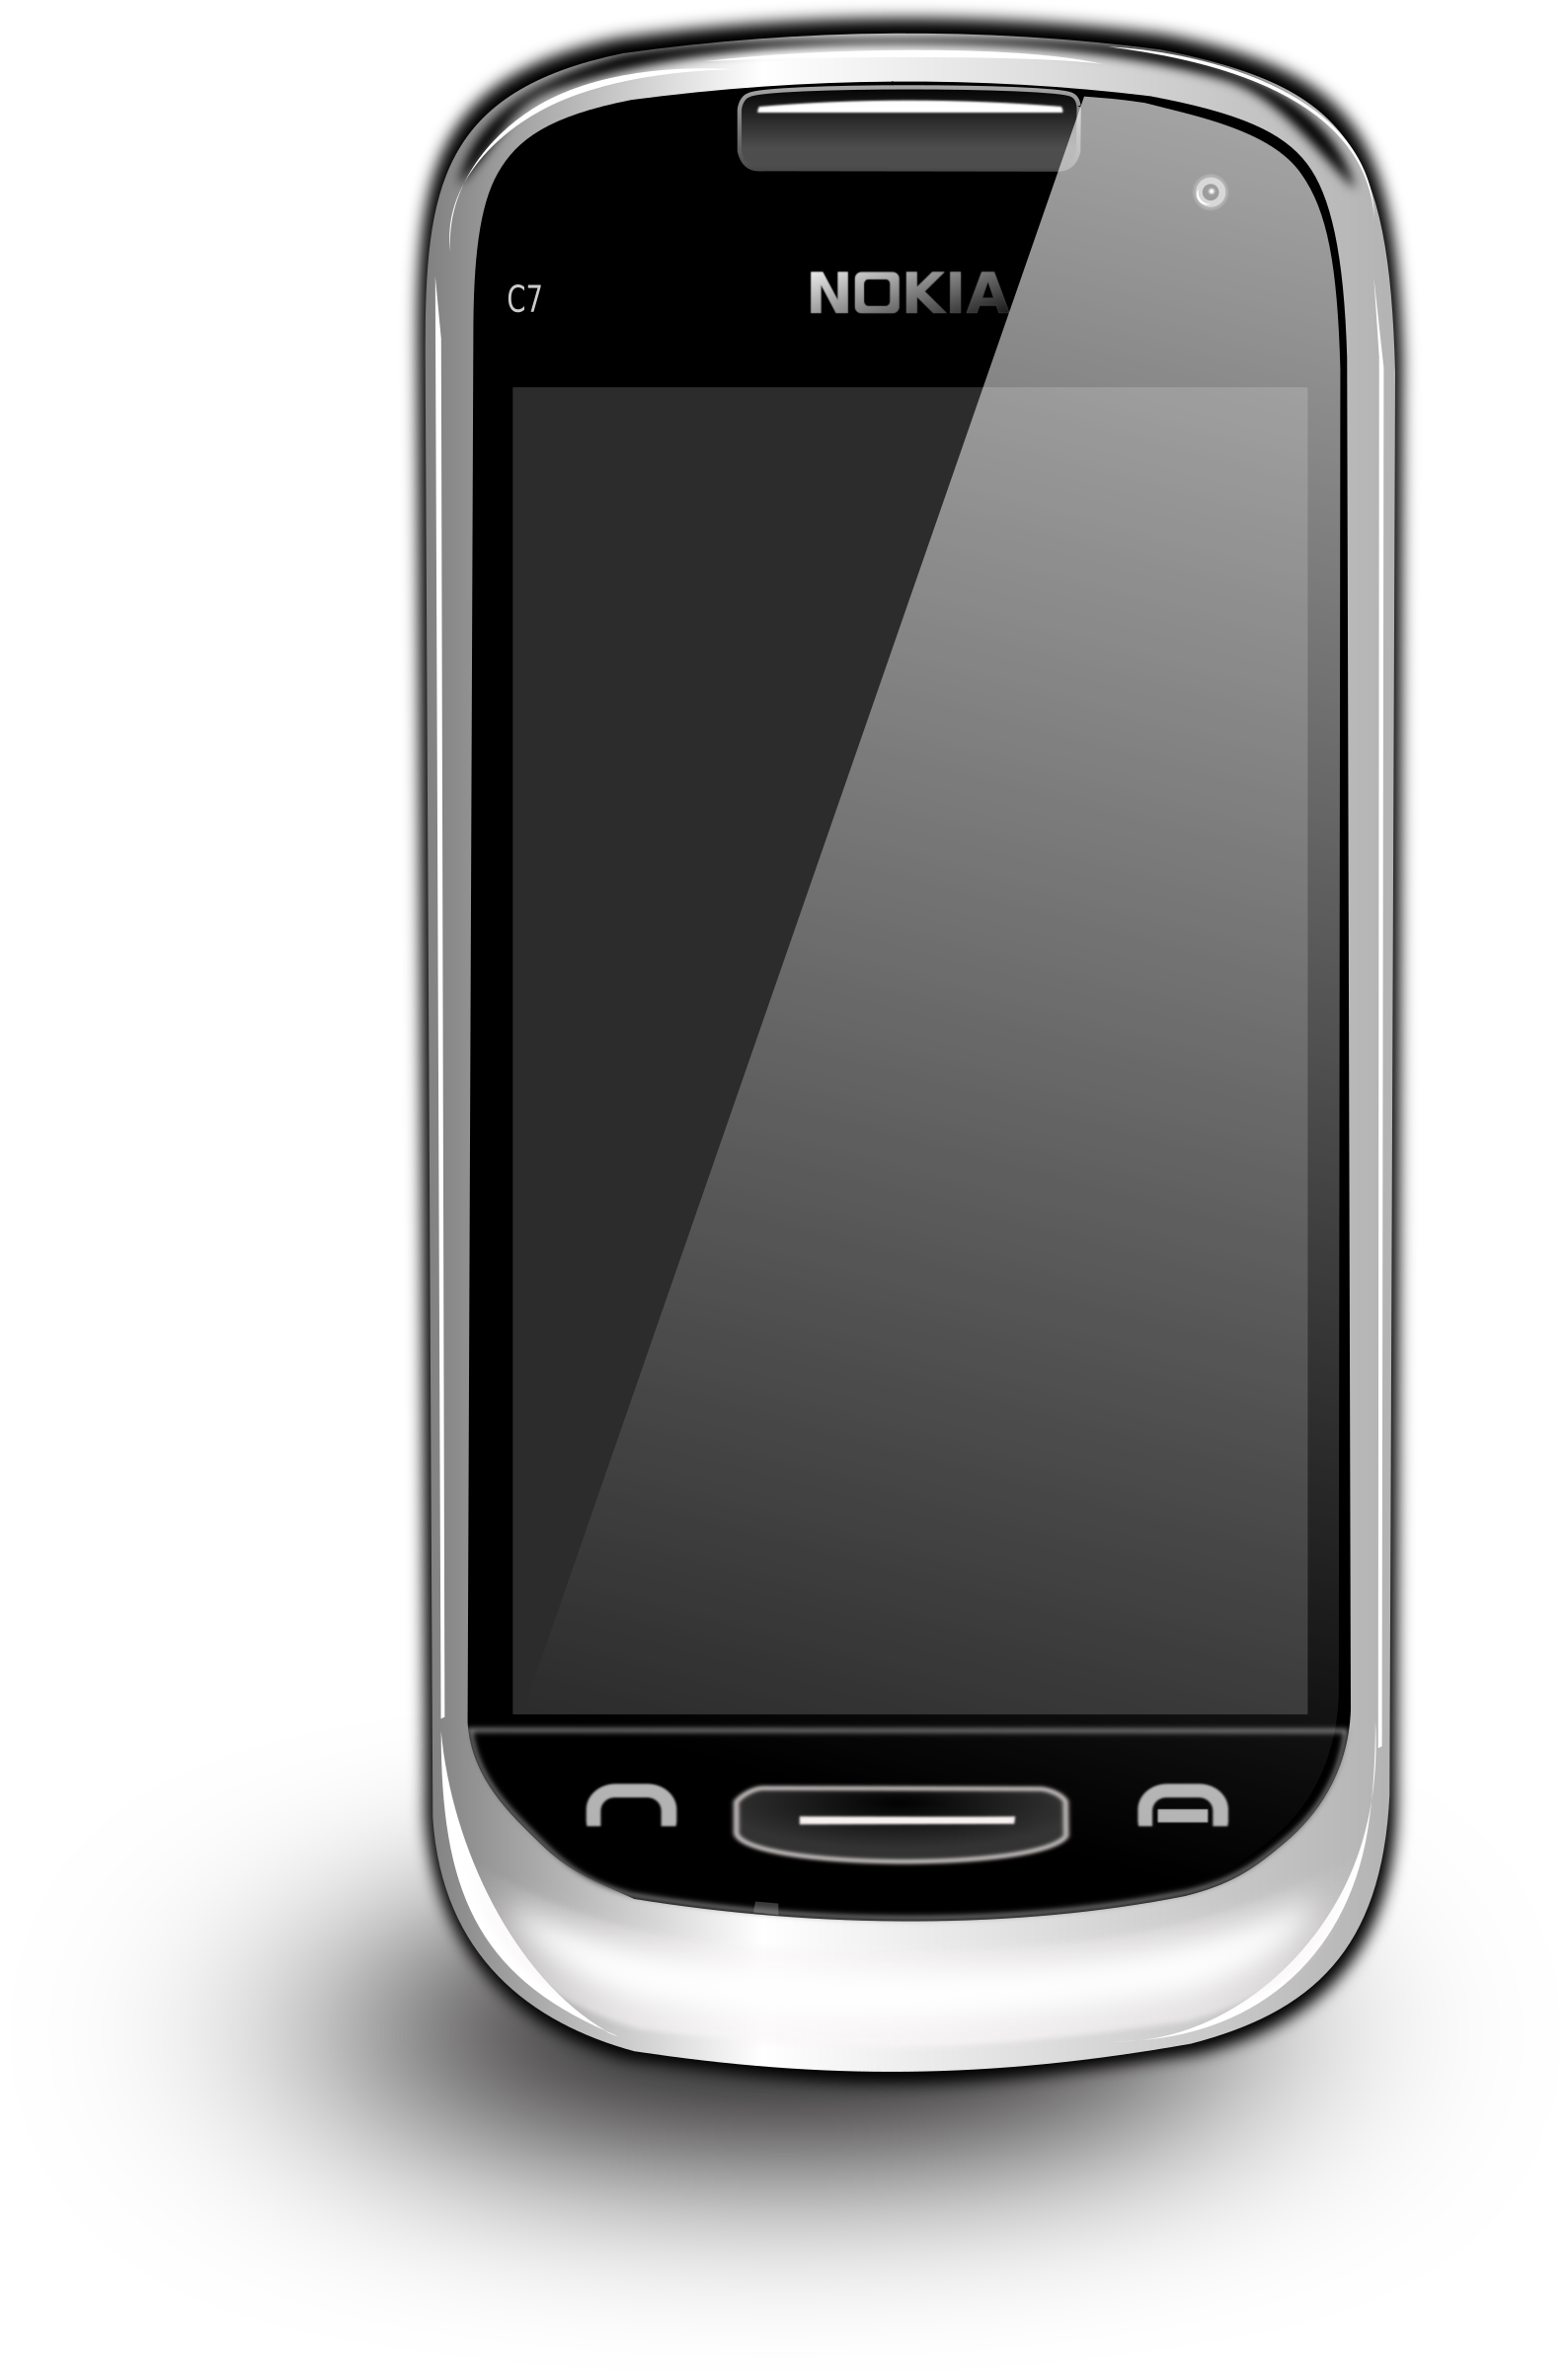 Phone big image png. Telephone clipart communication technology